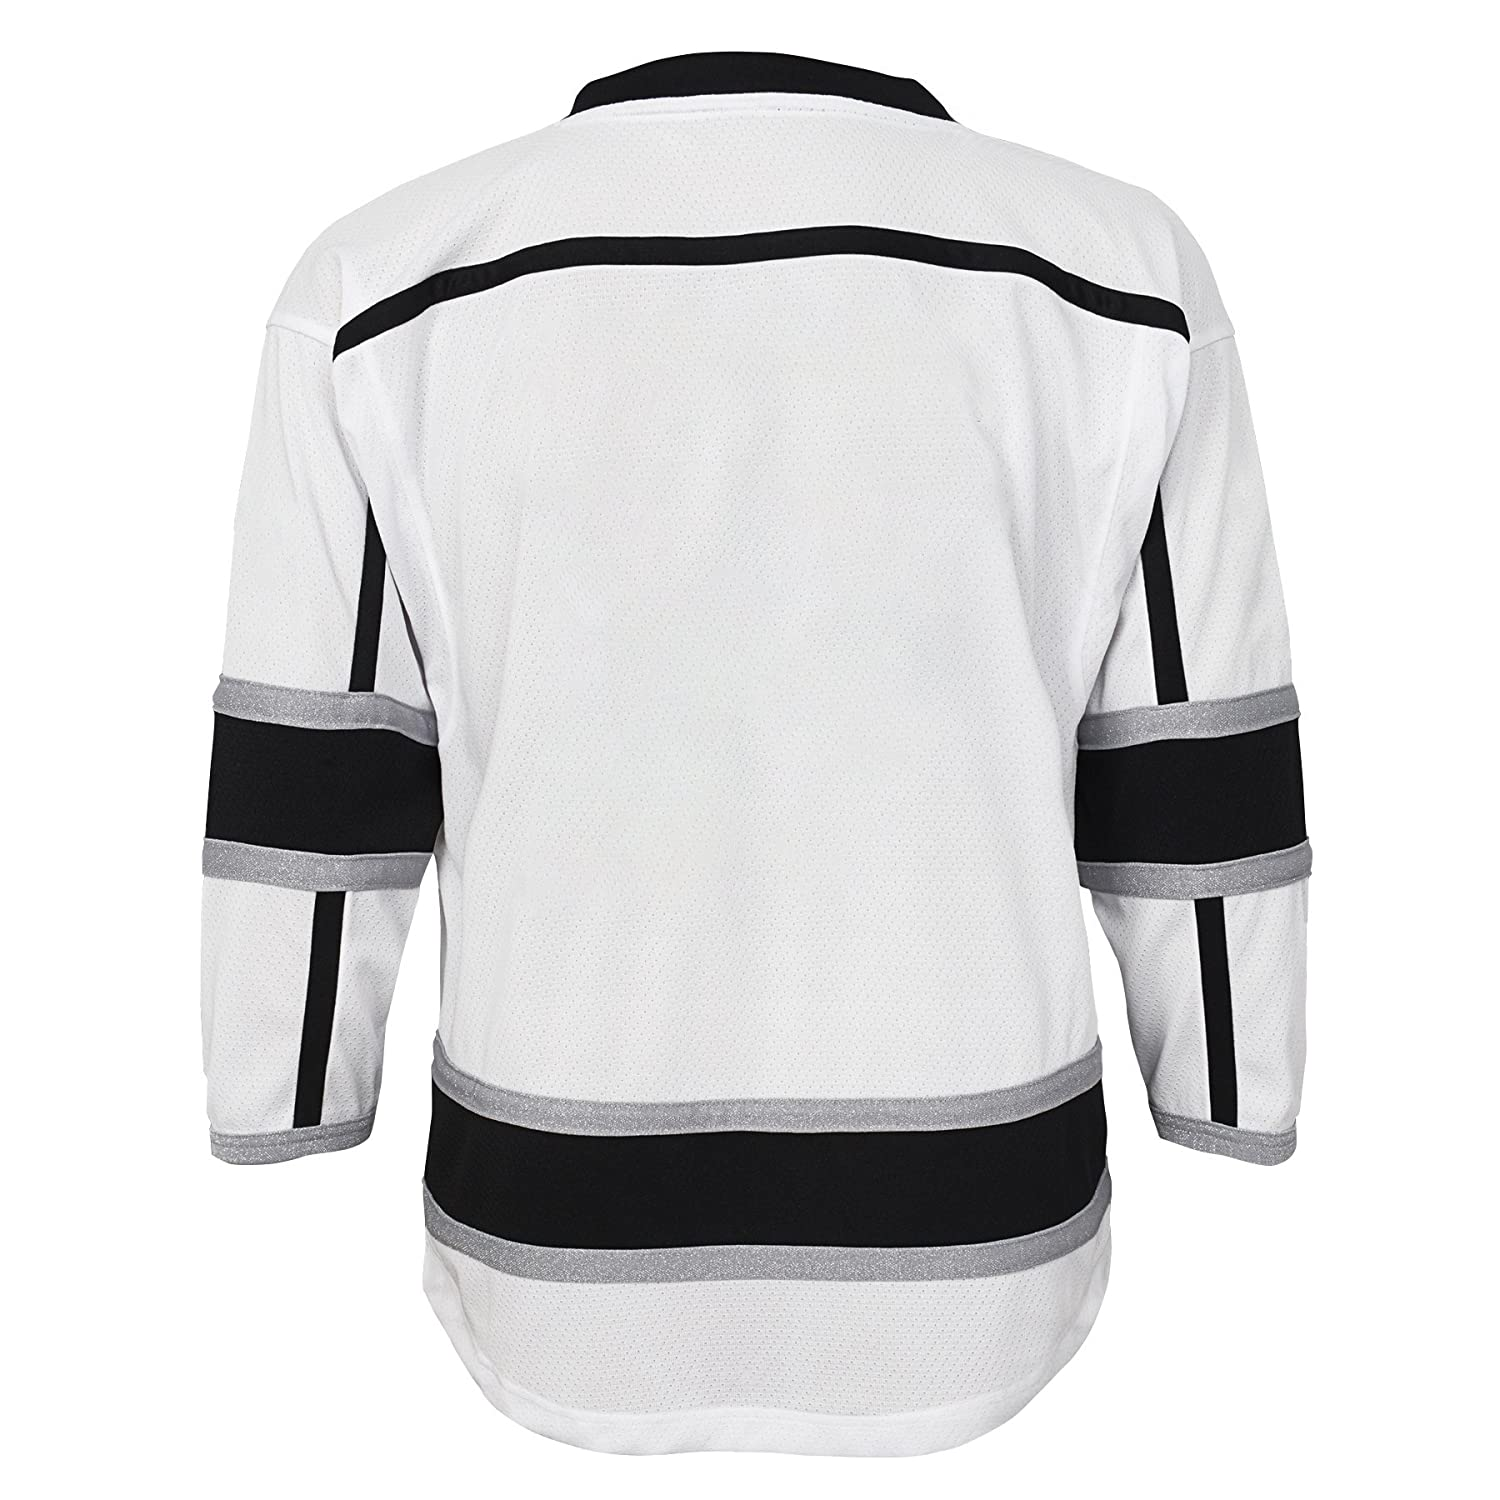 NHL Los Angeles Kings Youth Outerstuff Replica Jersey-Away White Youth One Size